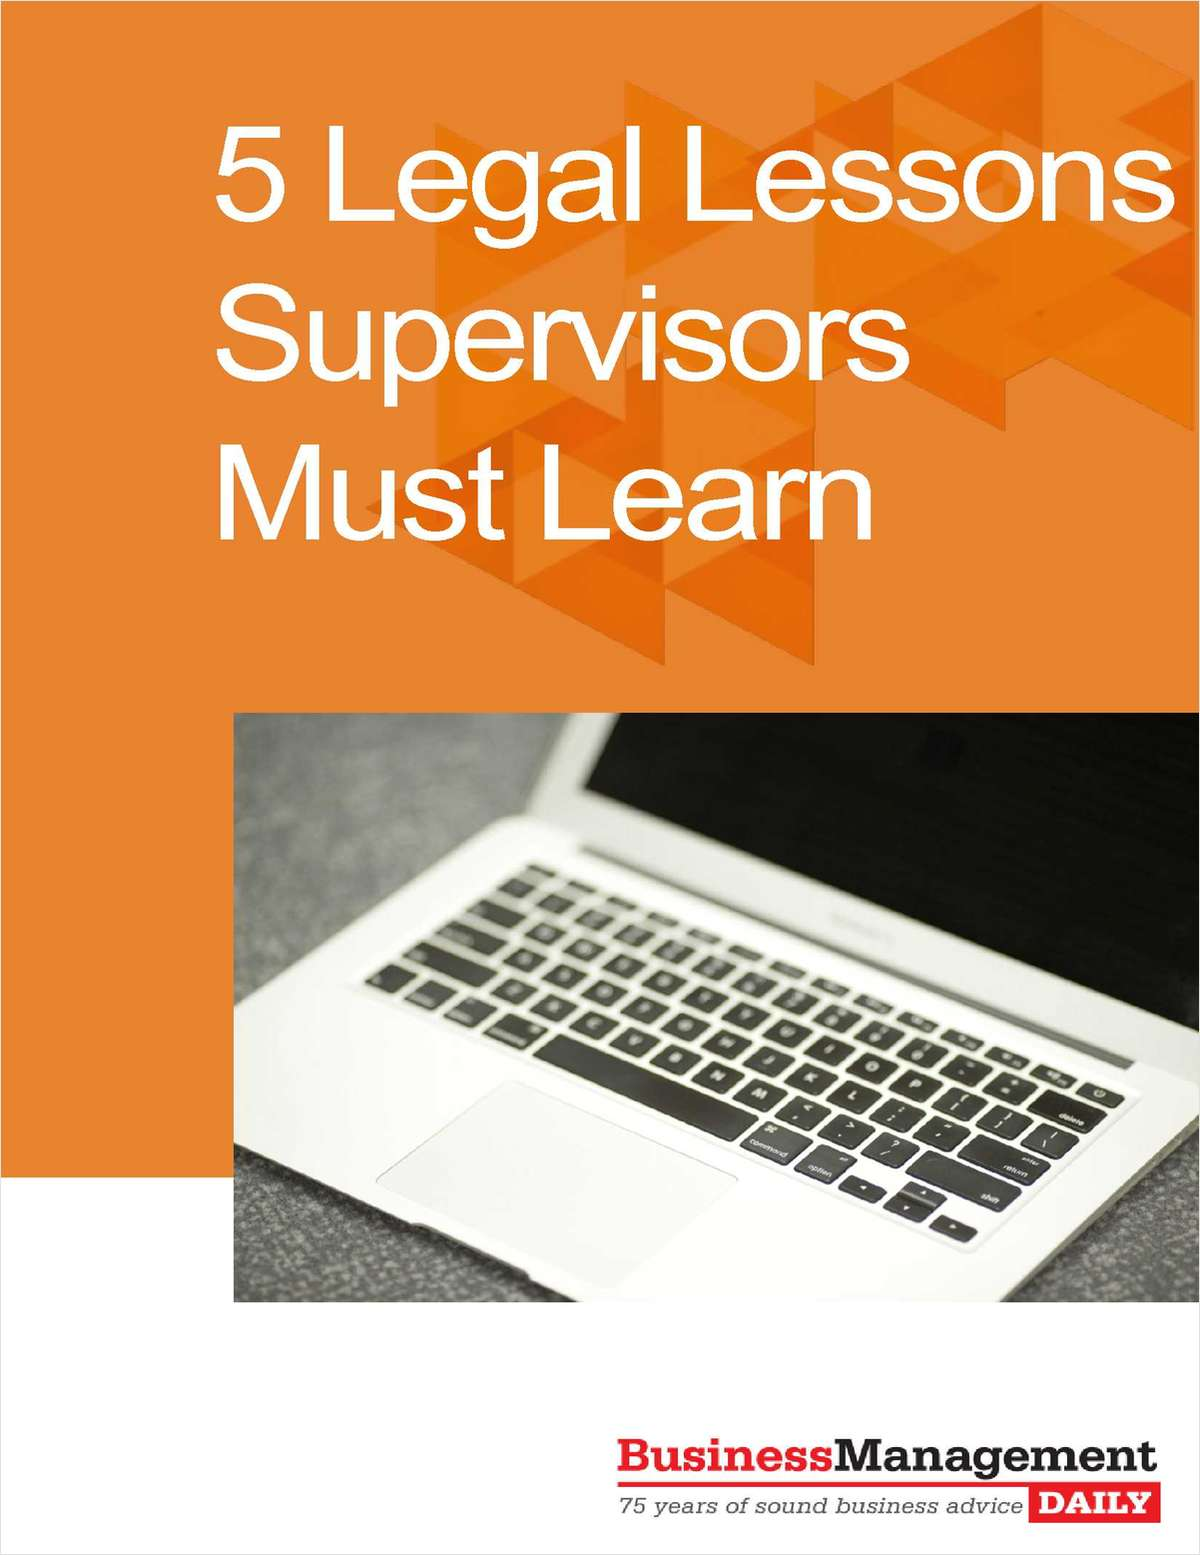 5 Legal Lessons Supervisors Must Learn